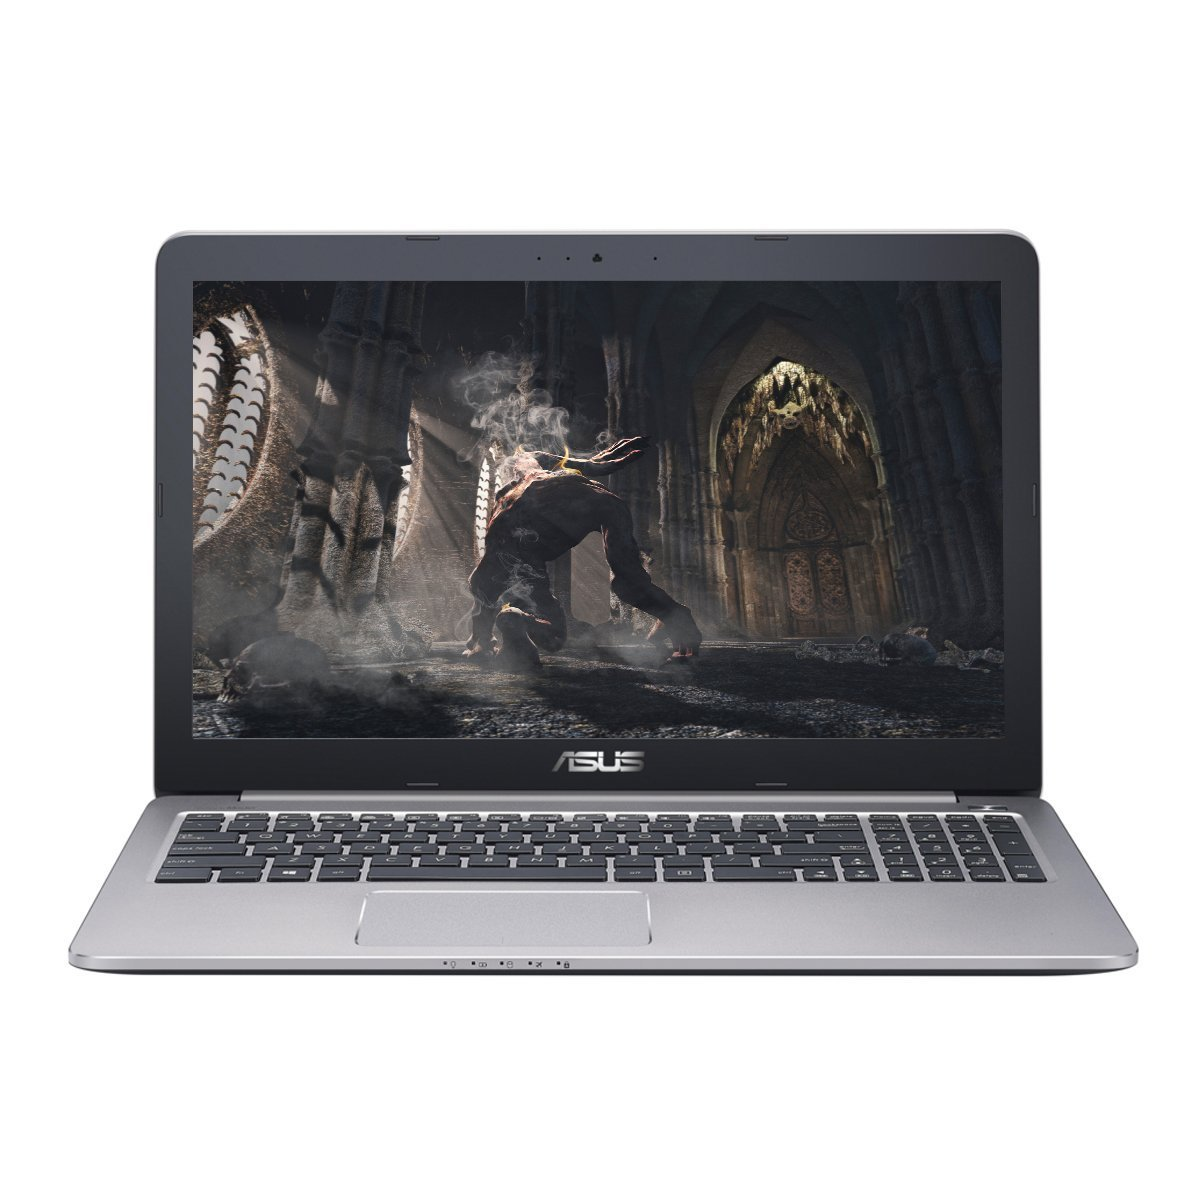 Best budget laptop for audio production